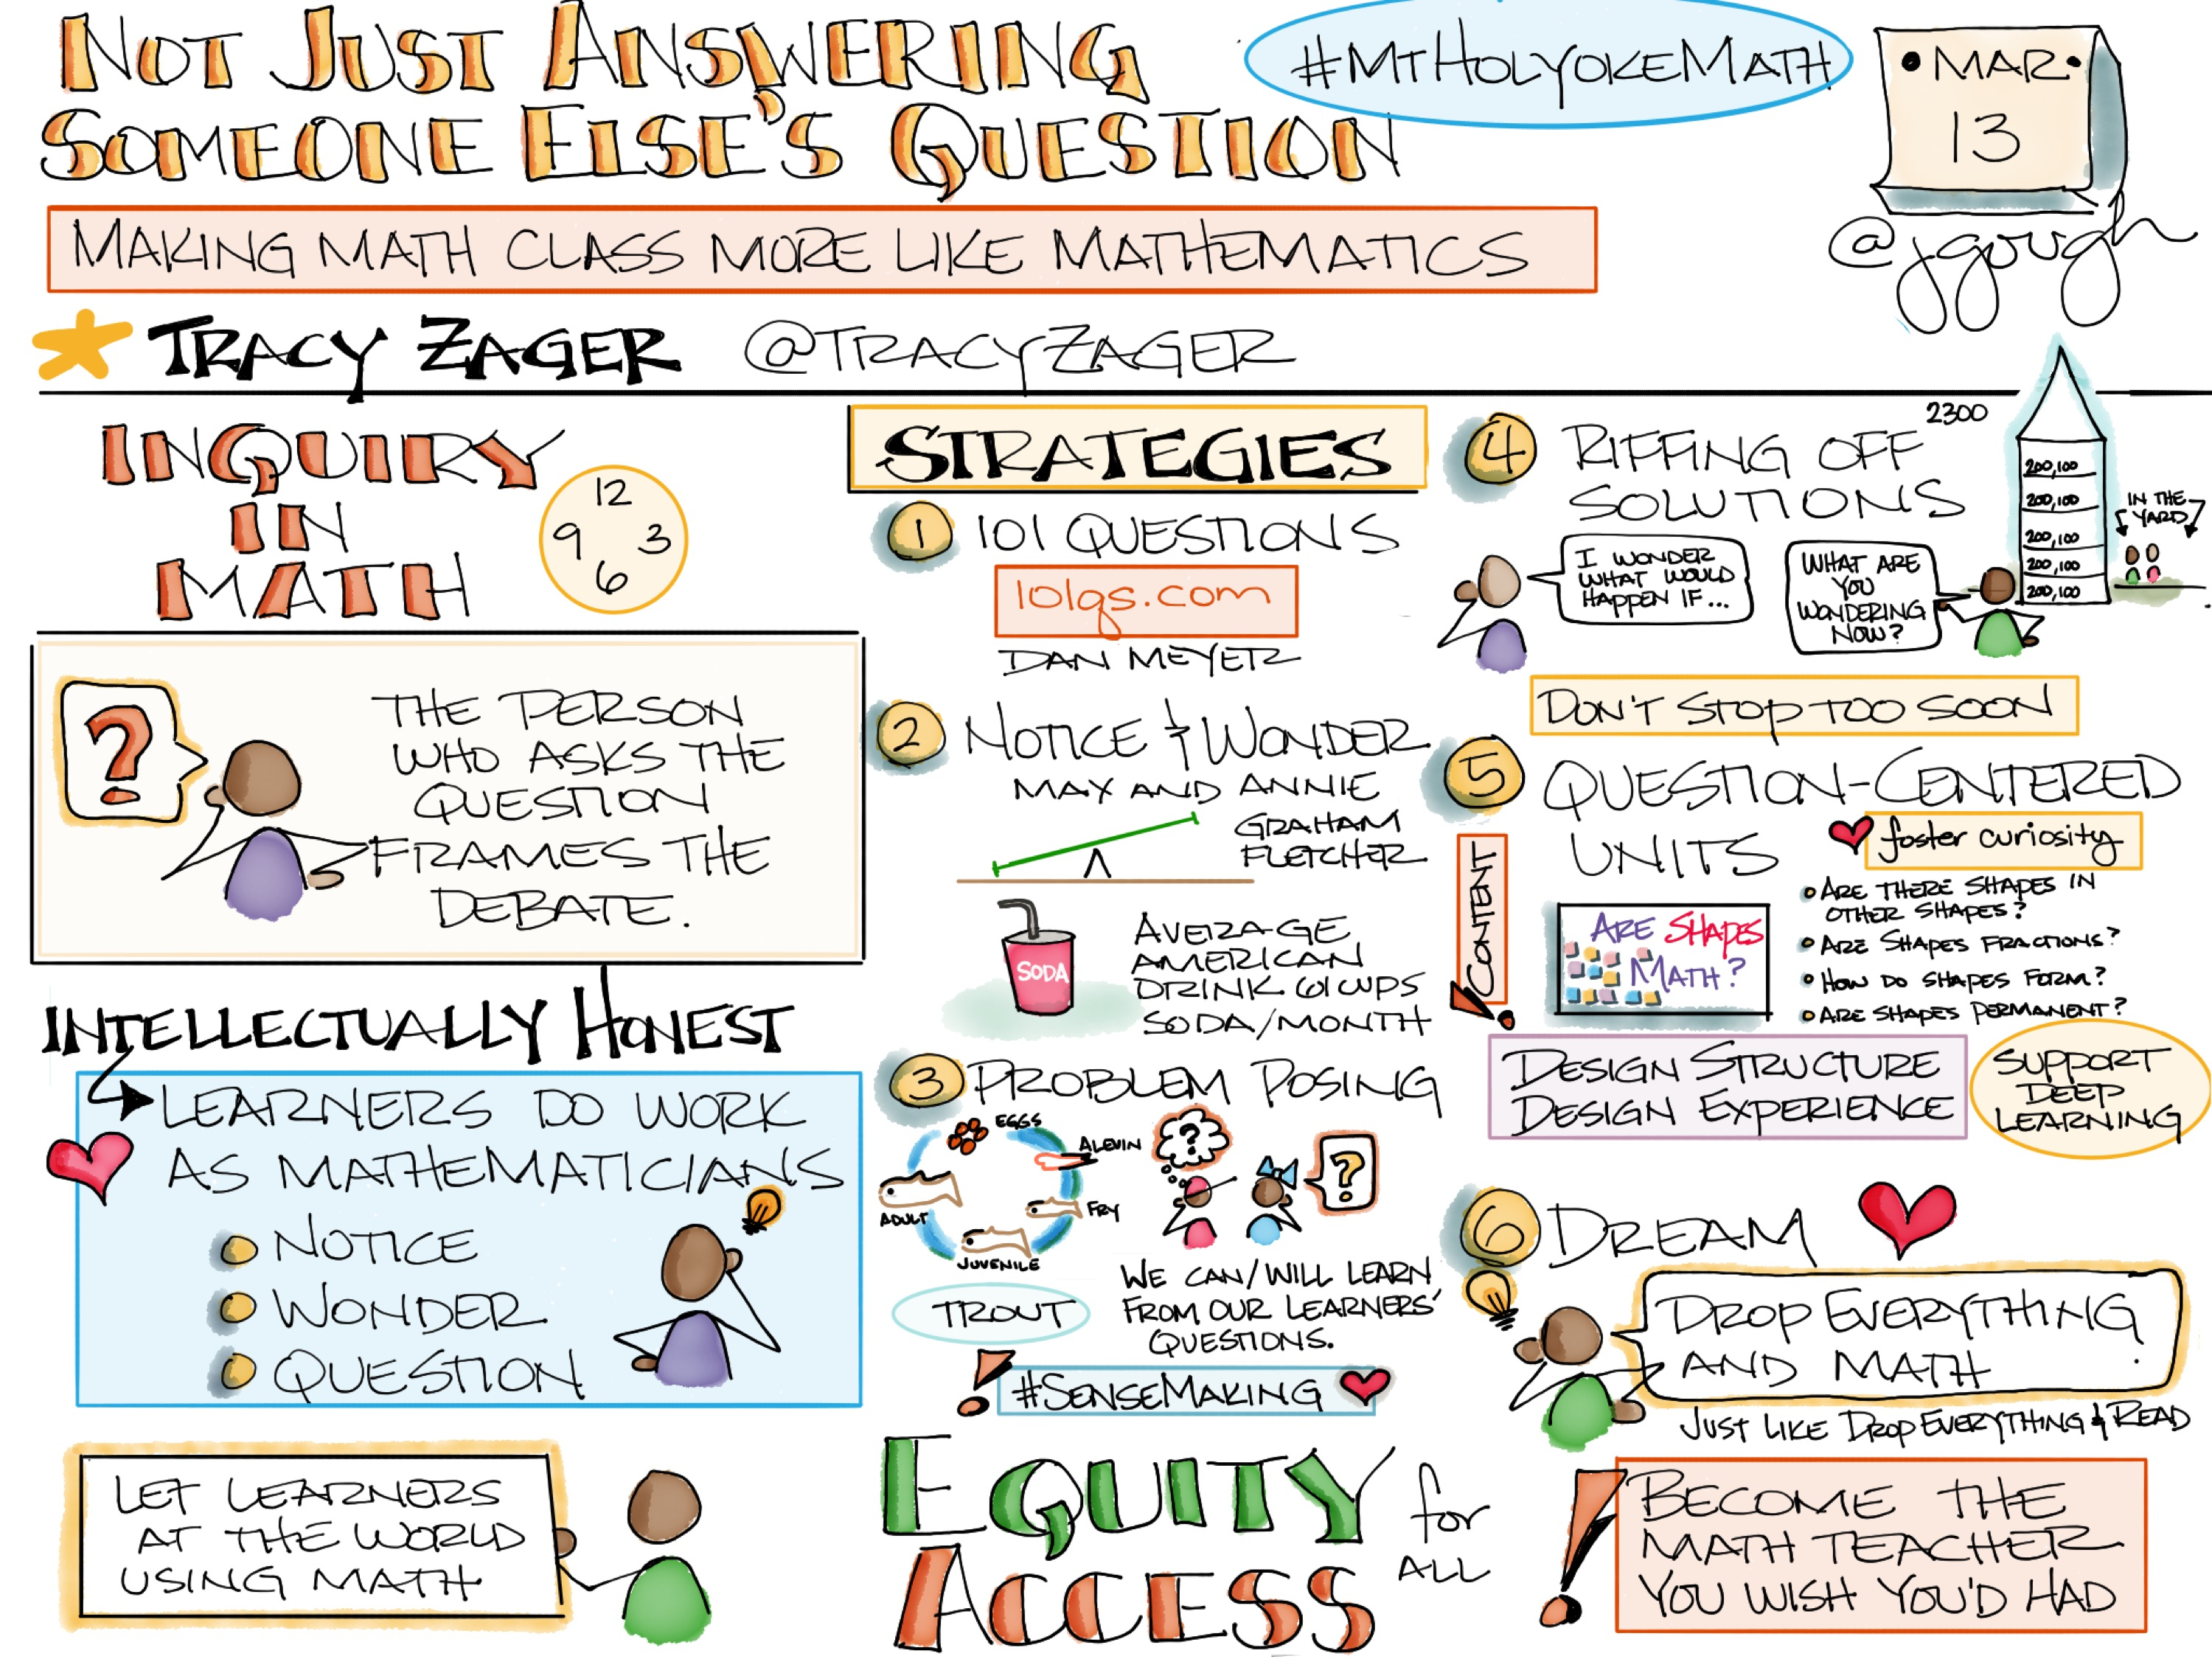 Not Just Answering Someone Else's Question: Making Math Class More Like Mathematics with @TracyZager DREAM: Drop Everything and Math #MtHolyokeMath